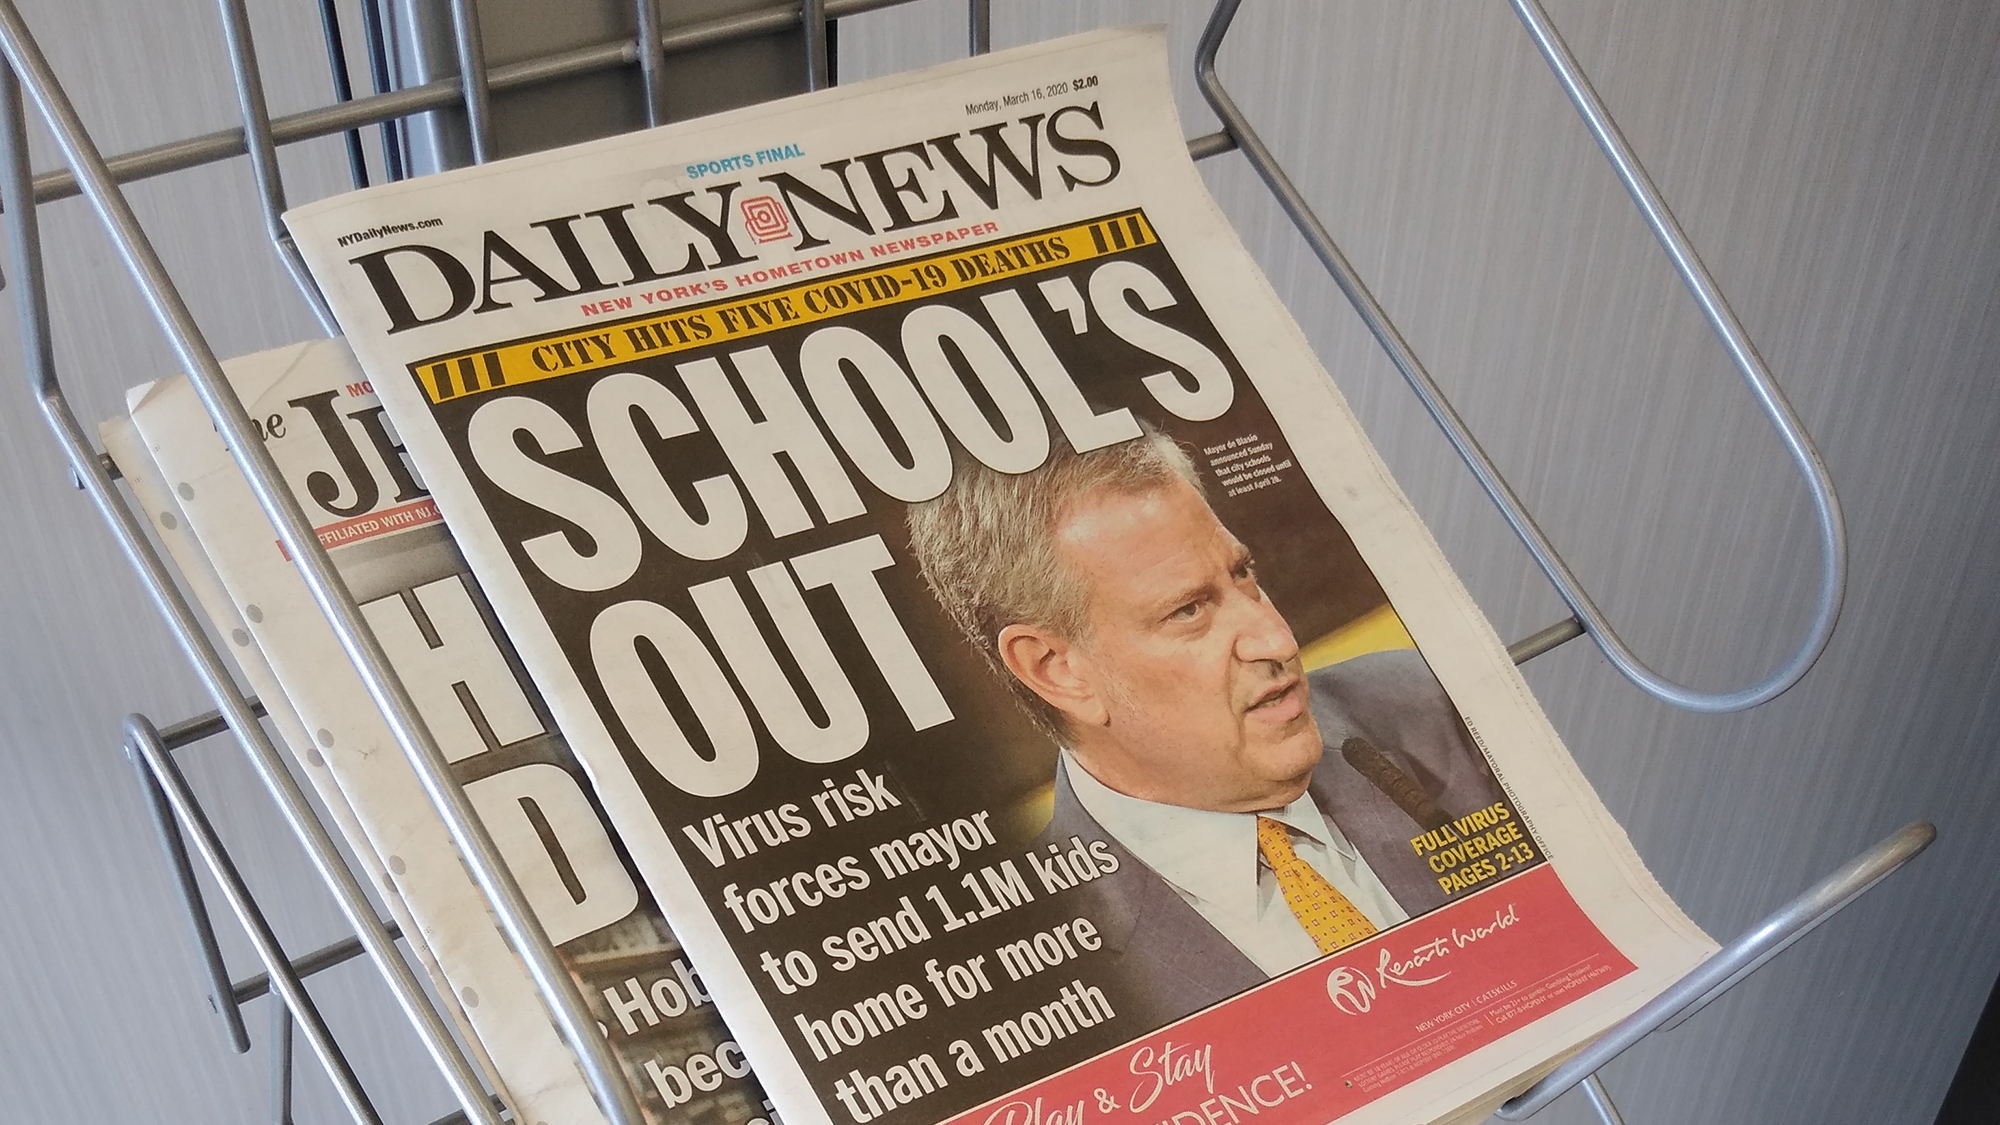 New York Daily News makes a plea for local ownership as hedge fund takeover looms